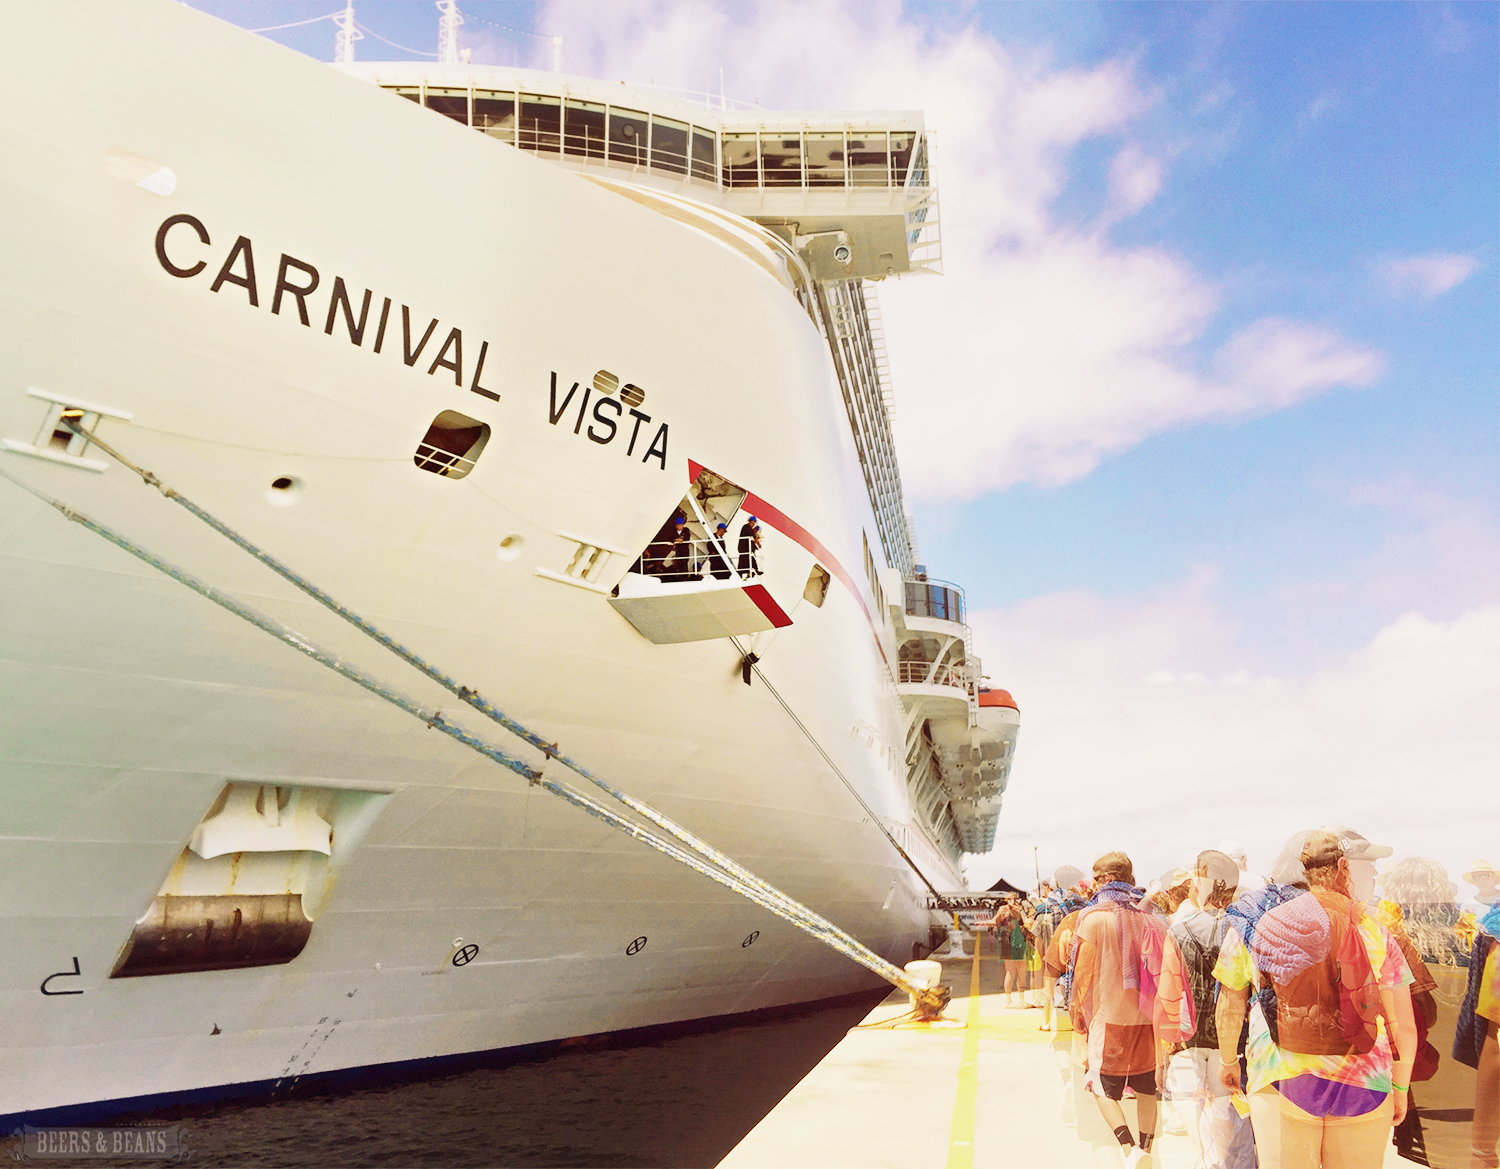 Cruise passengers boarding the Carnival Vista in Grand Turk.